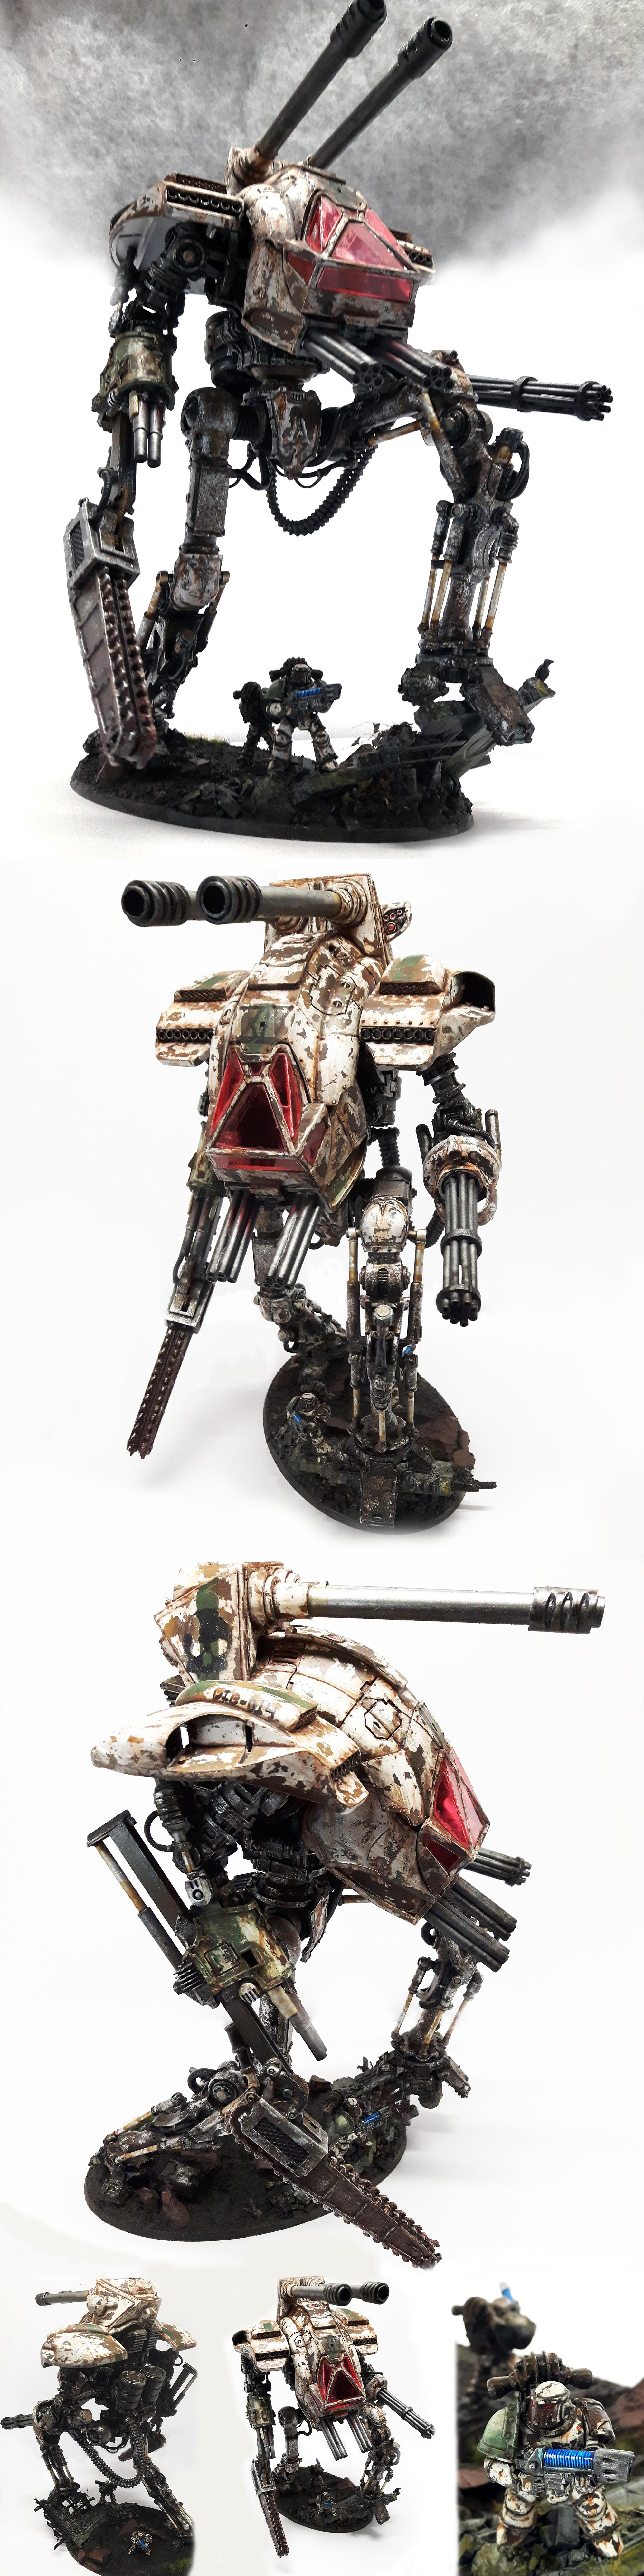 Cerastus, Chipping, Conversion, Death Guard, Destruction, Diorama, Imperial, Knights, Mecha, Pre Heresy, Rust, Scratch, Space Marines, Titan, Weathered